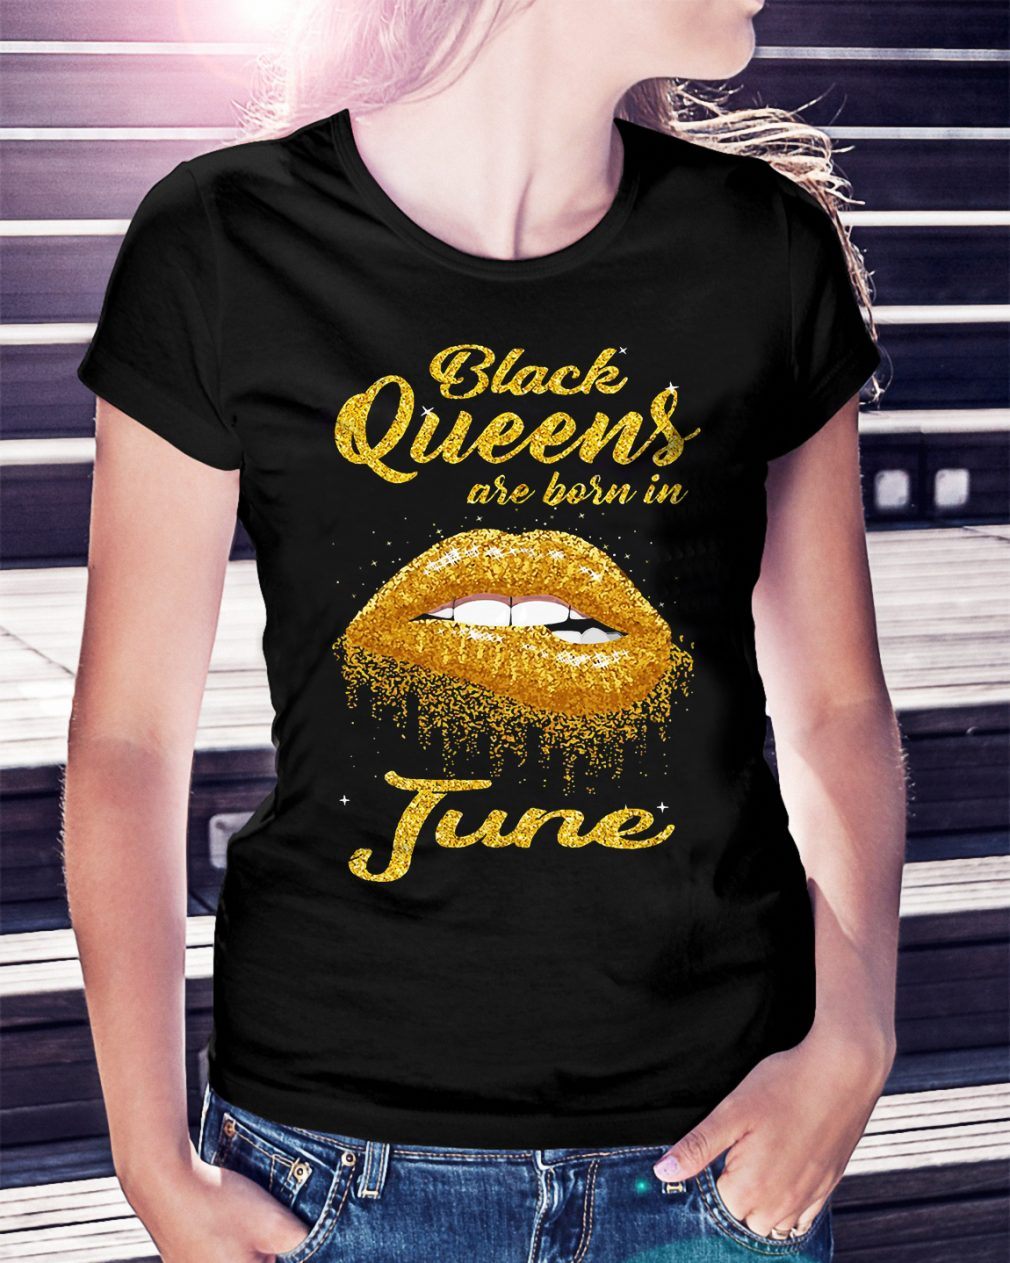 Black queens are born in June shirt